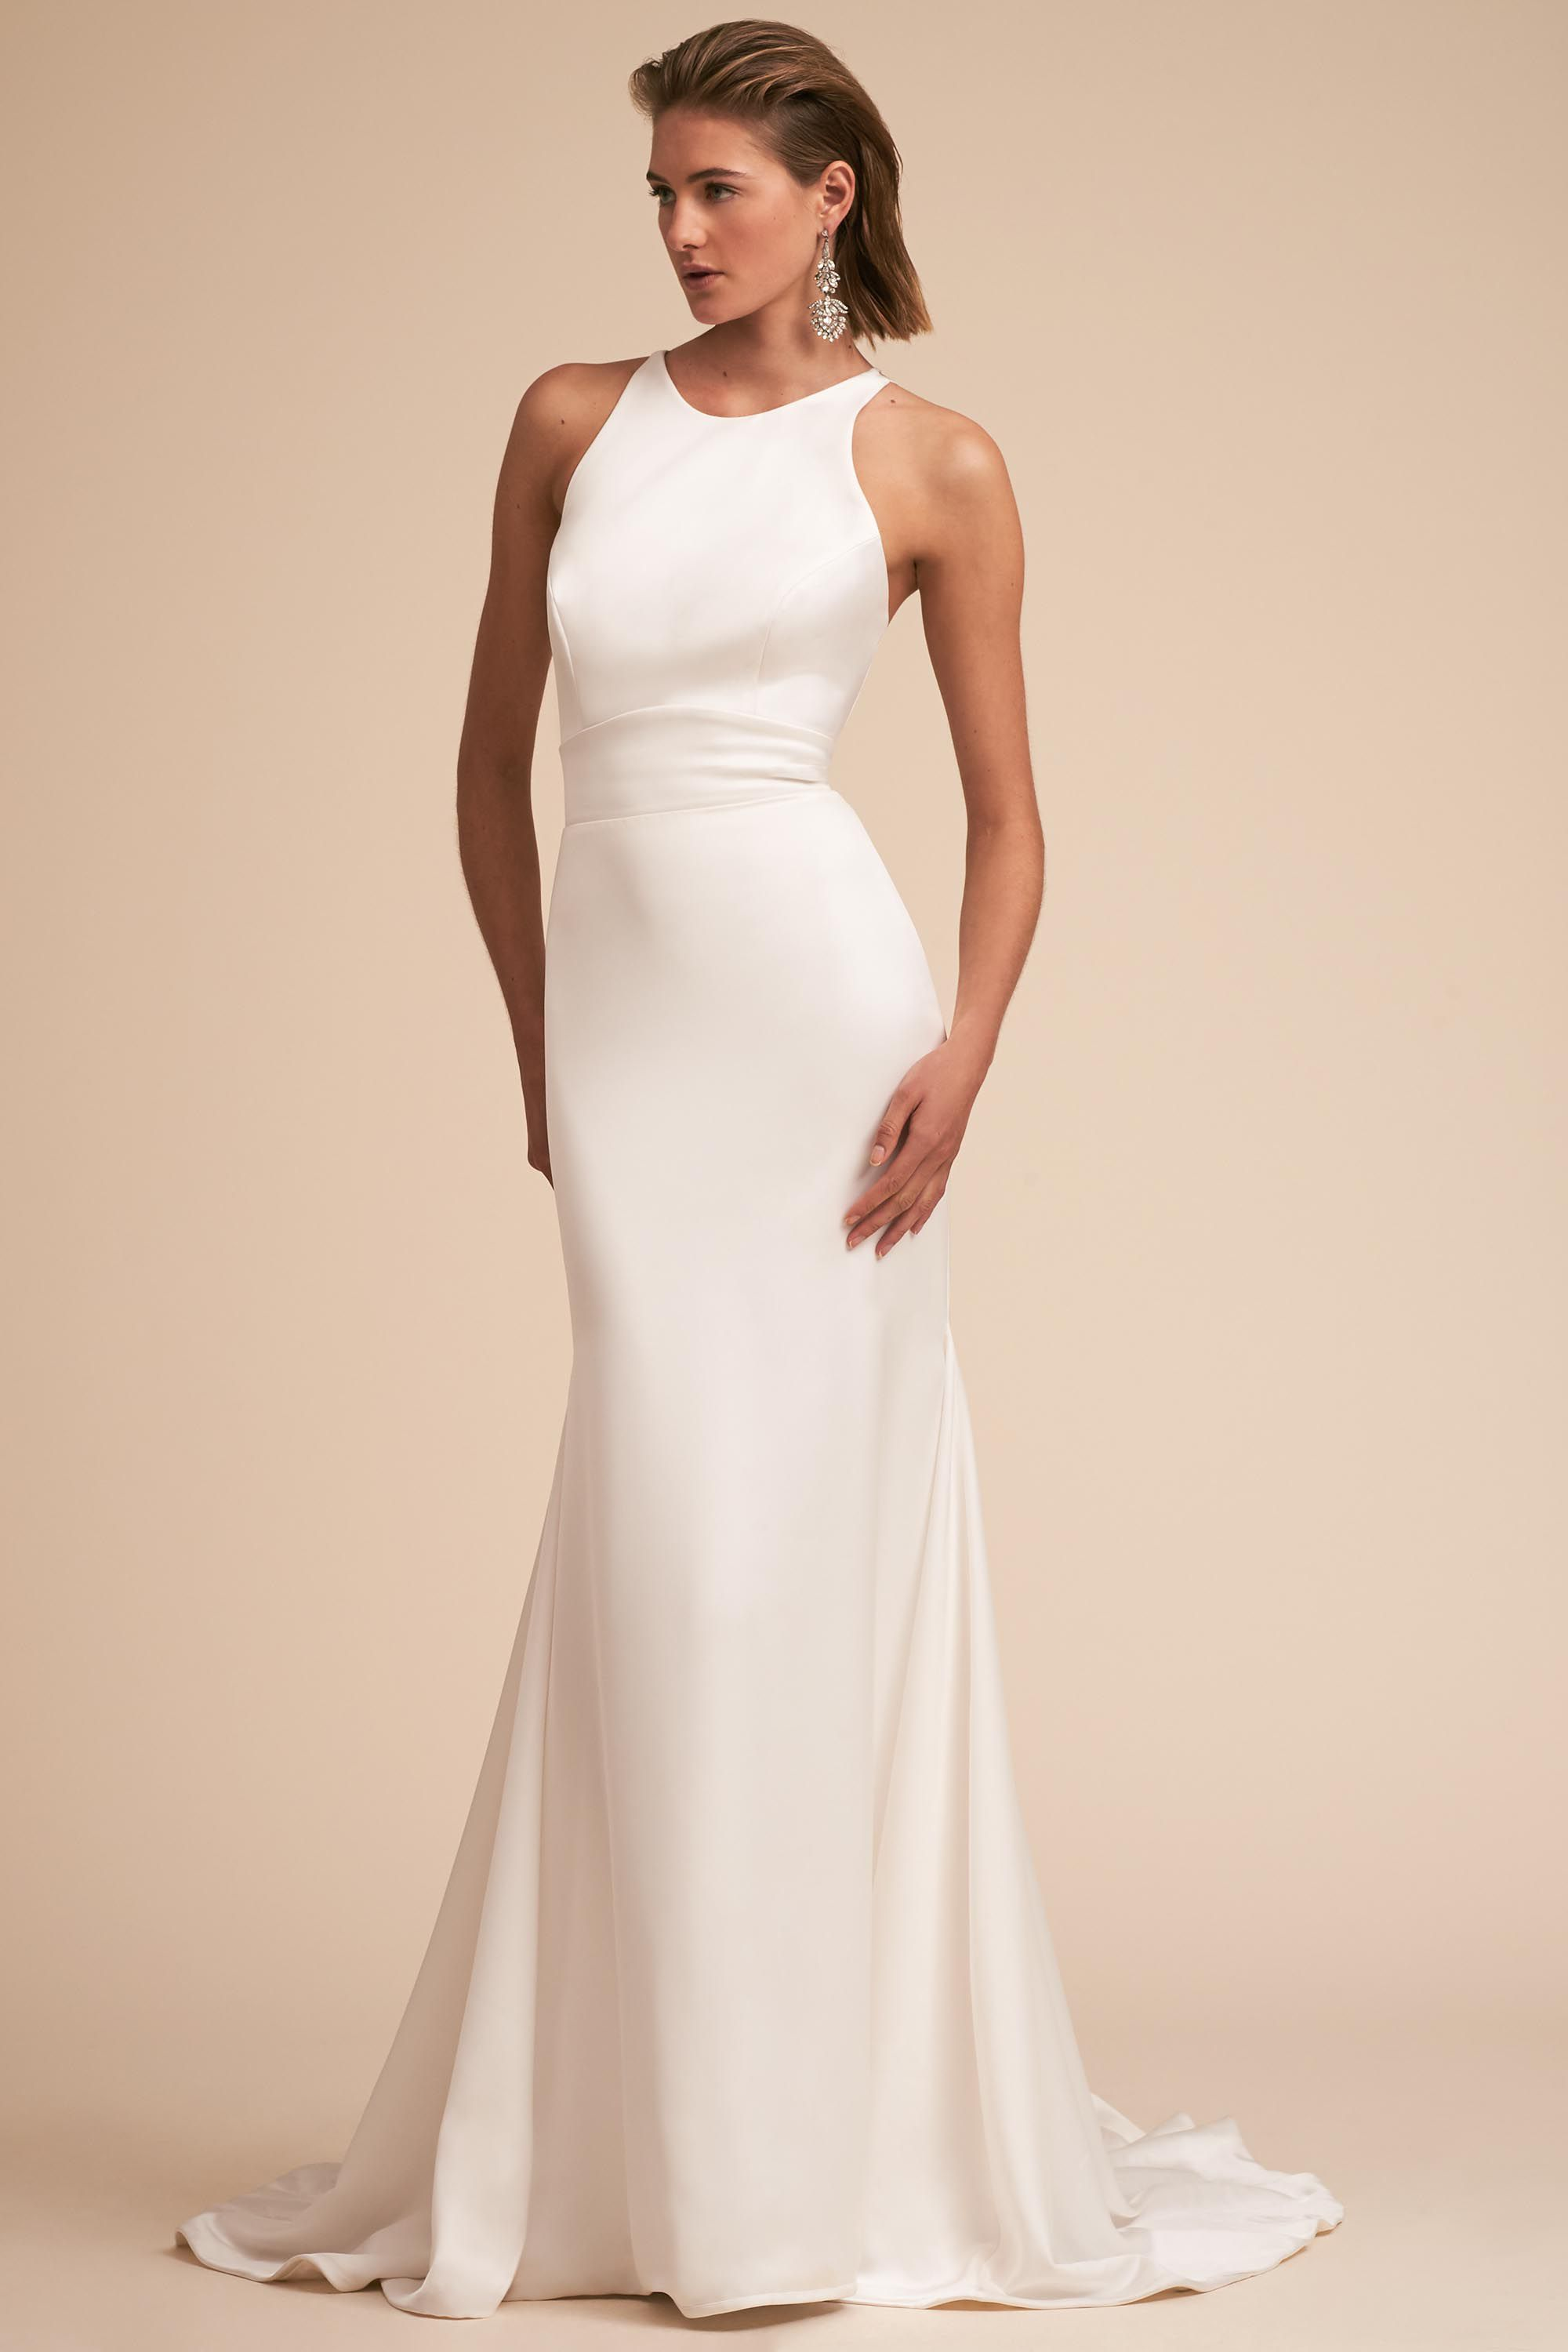 44697811 011 a?$browse l$ - Modern Wedding Dress Designers